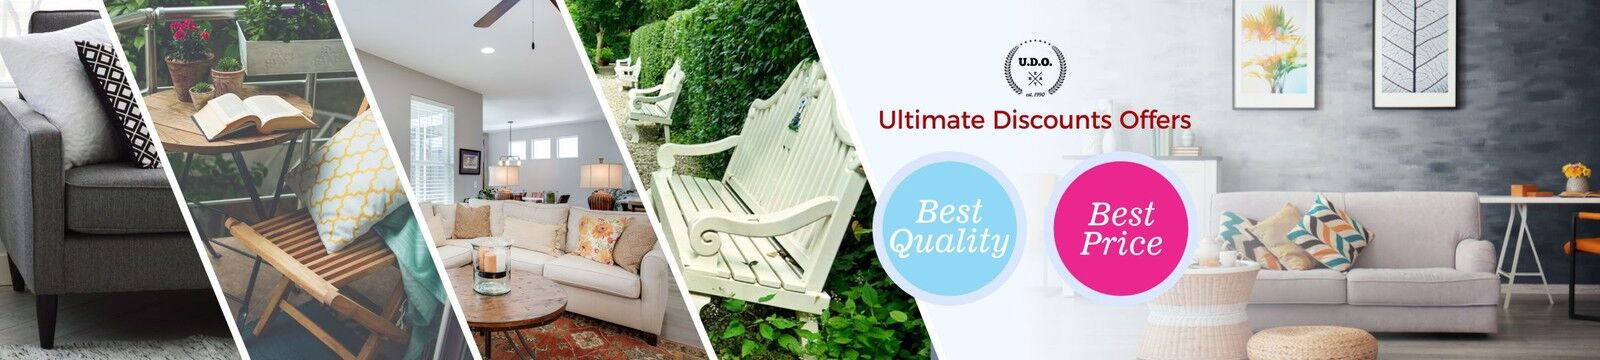 Ultimate Discounts Offers